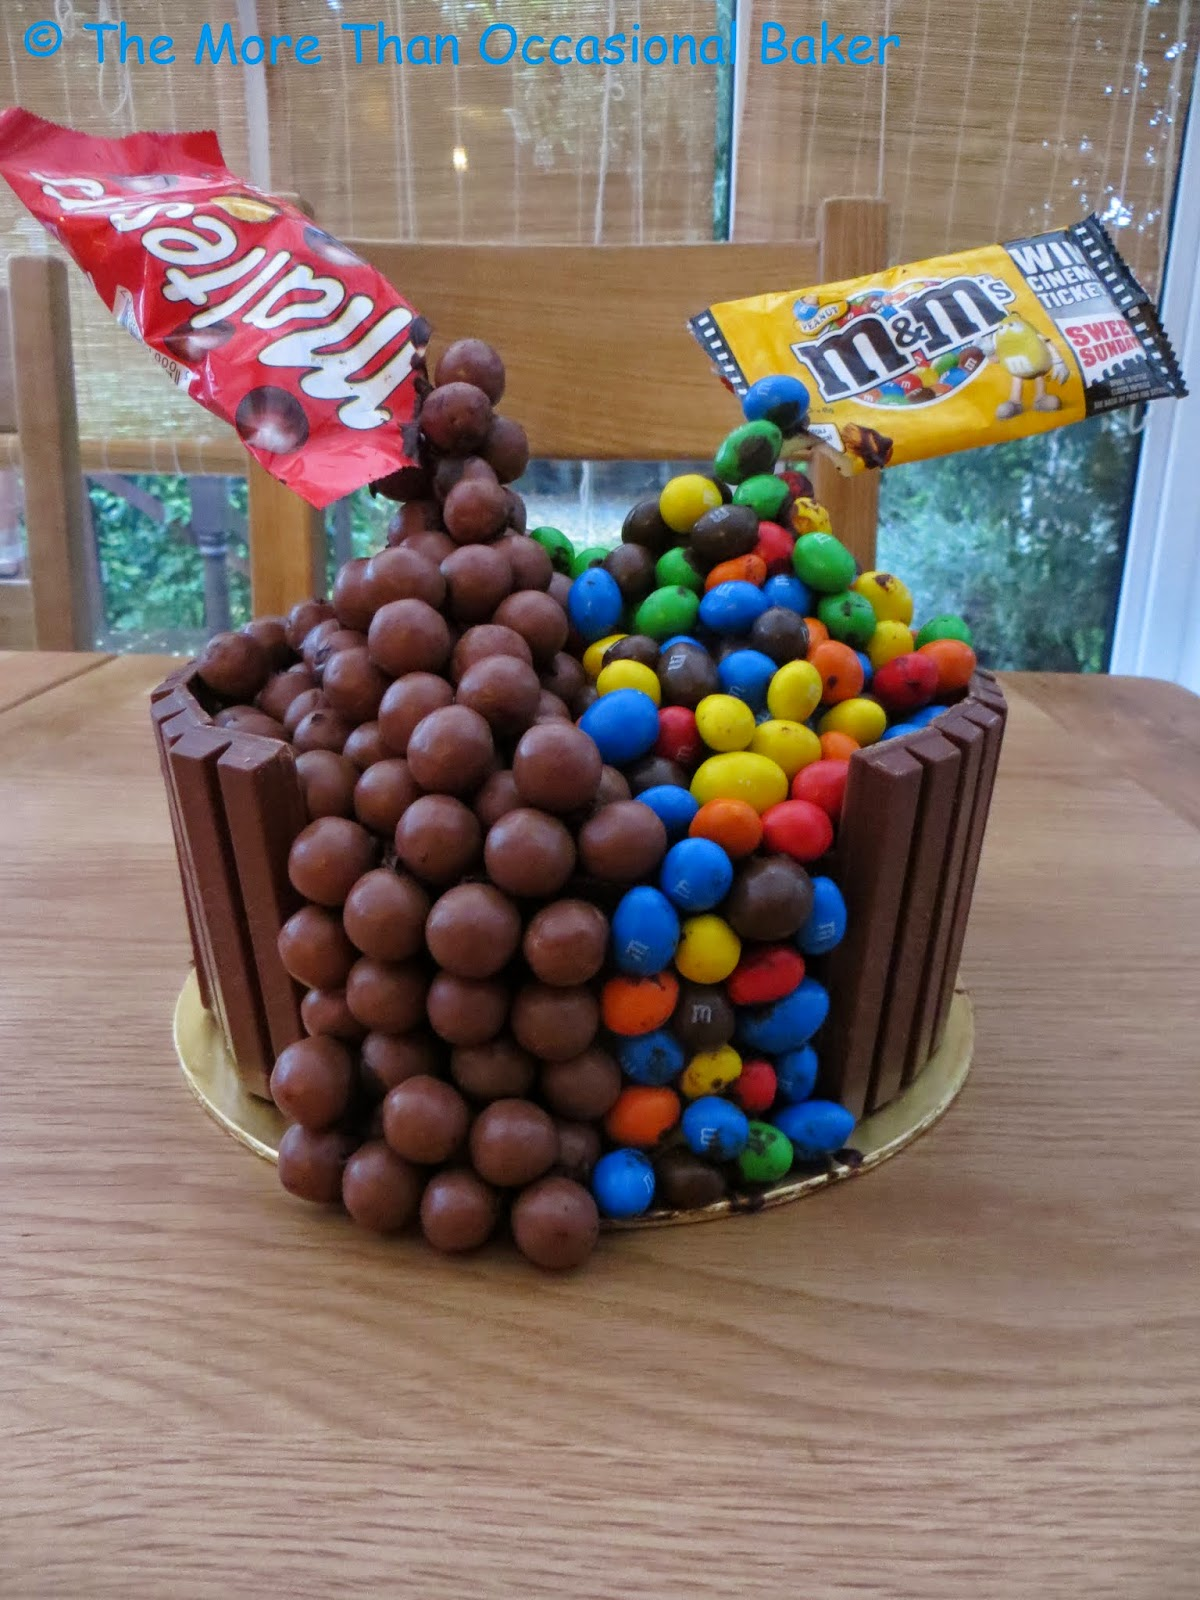 Floating Malteser cake